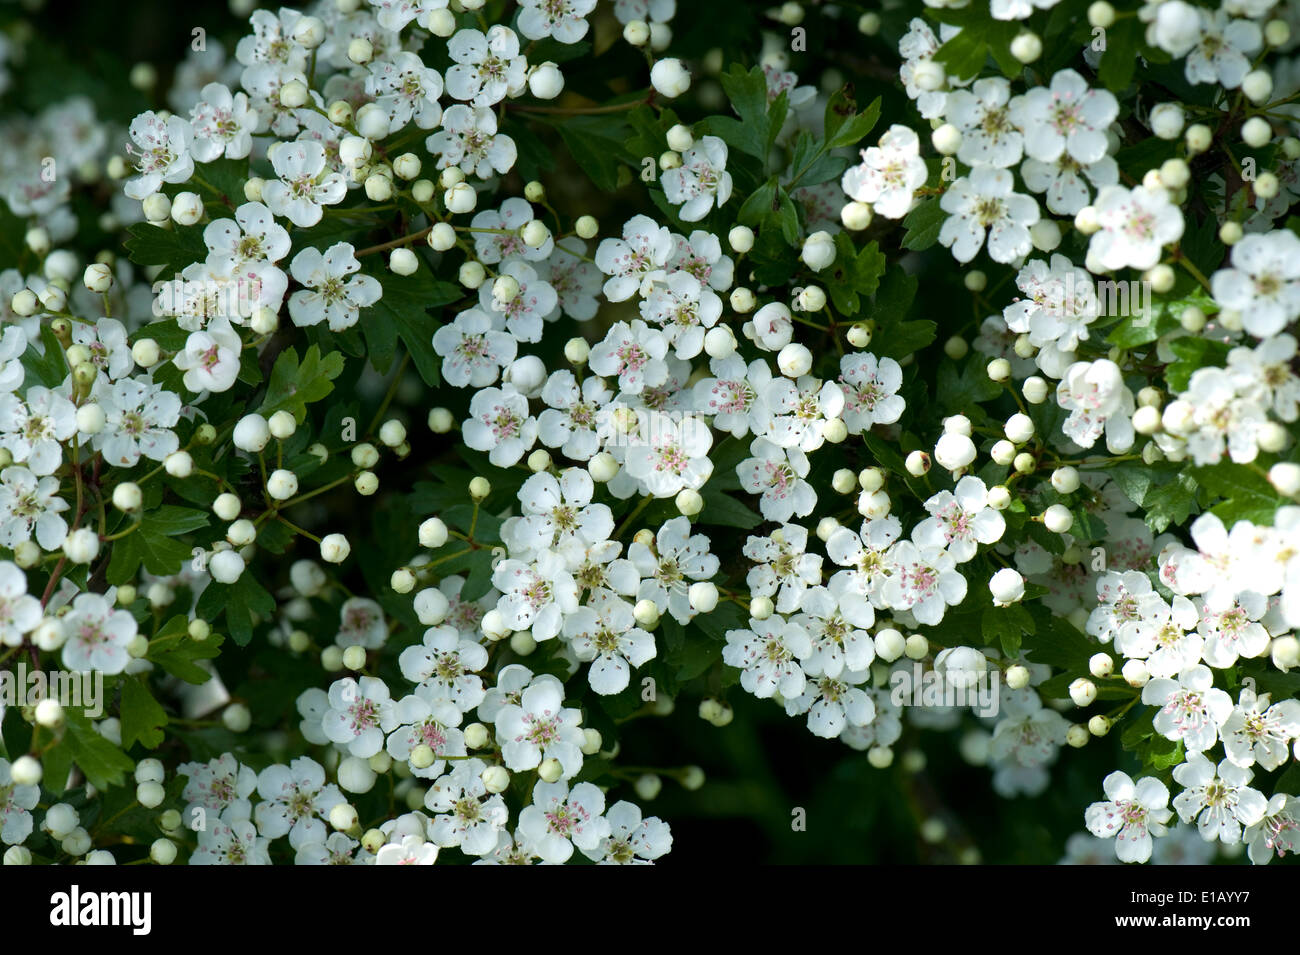 May blossom stock photos may blossom stock images alamy hawthorn or may blossom crataegus monogyna prolific white flowers on a native hedgerow plant mightylinksfo Choice Image